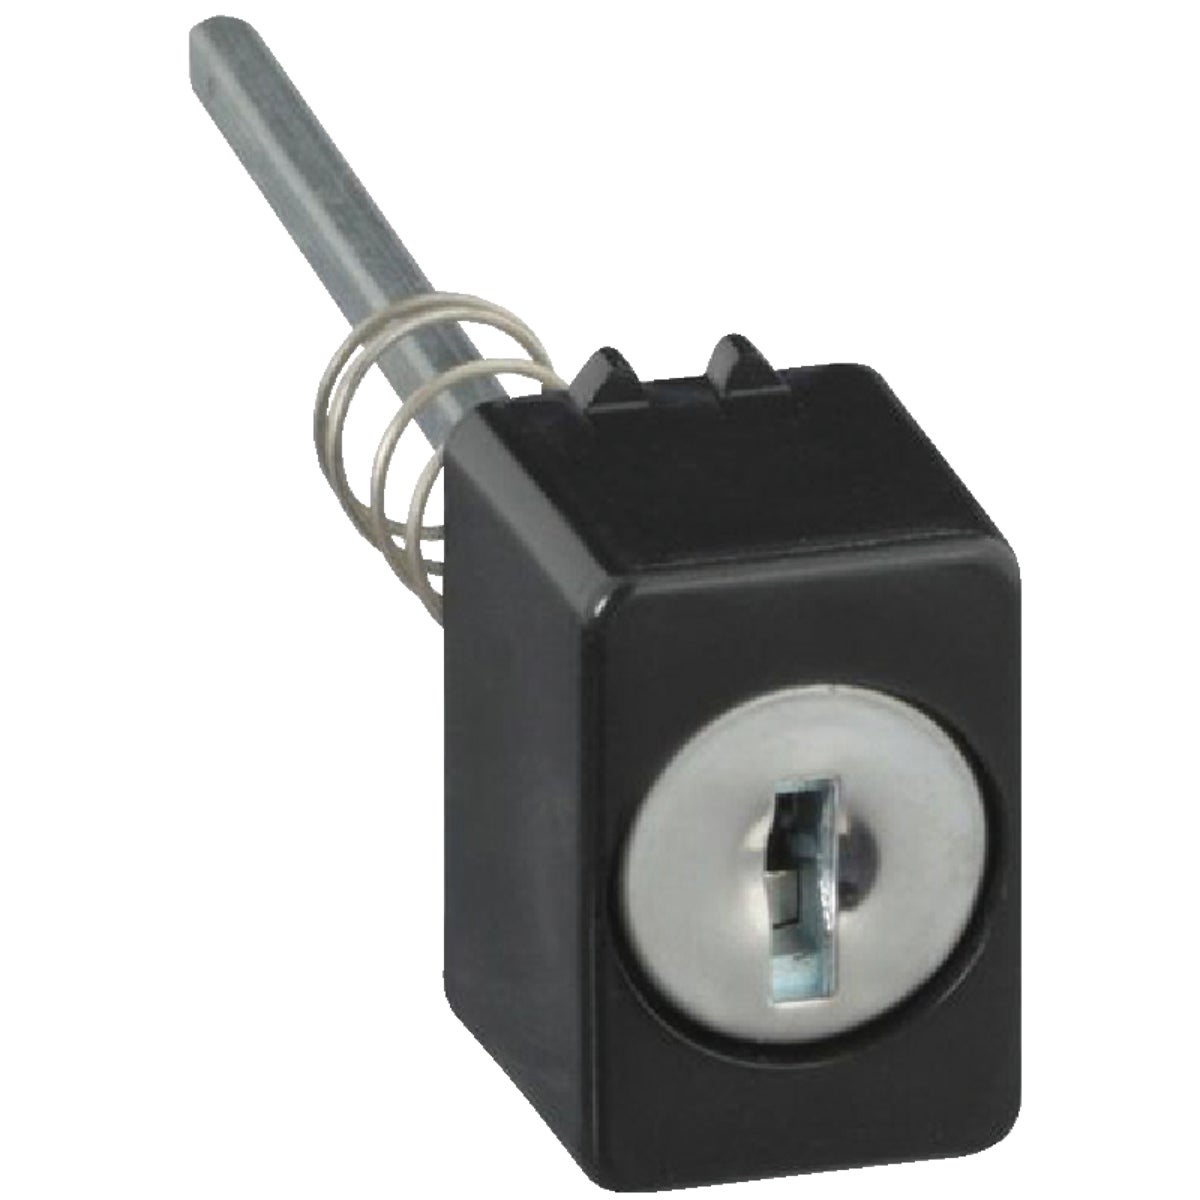 Key Lock Push Button